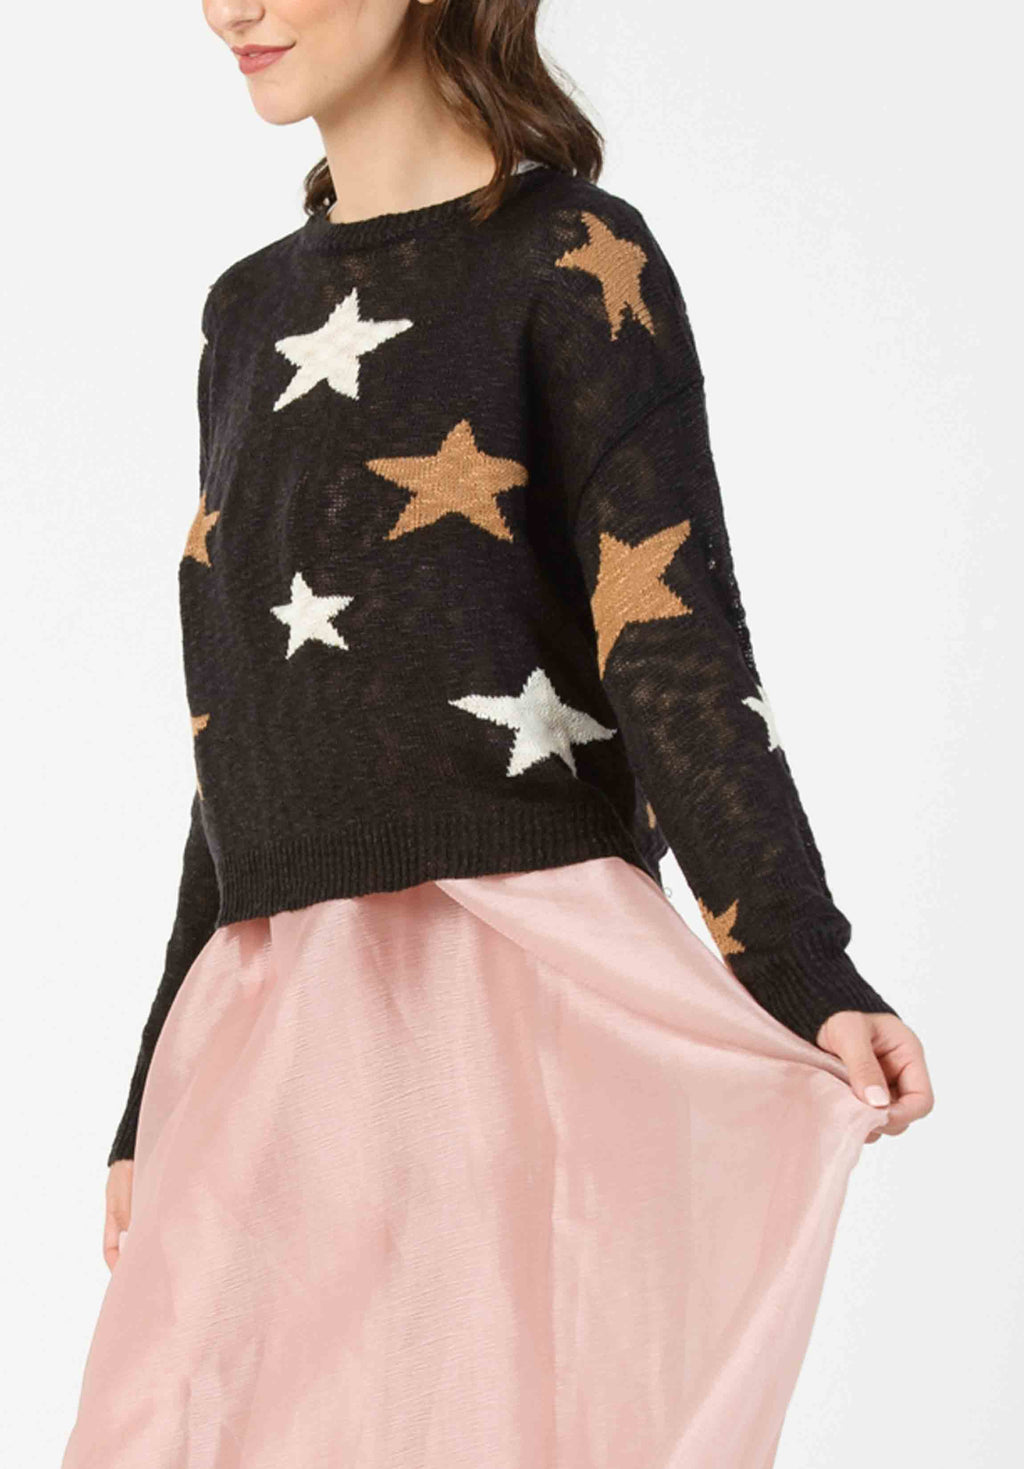 STARLIGHT 🌟 SWEATER